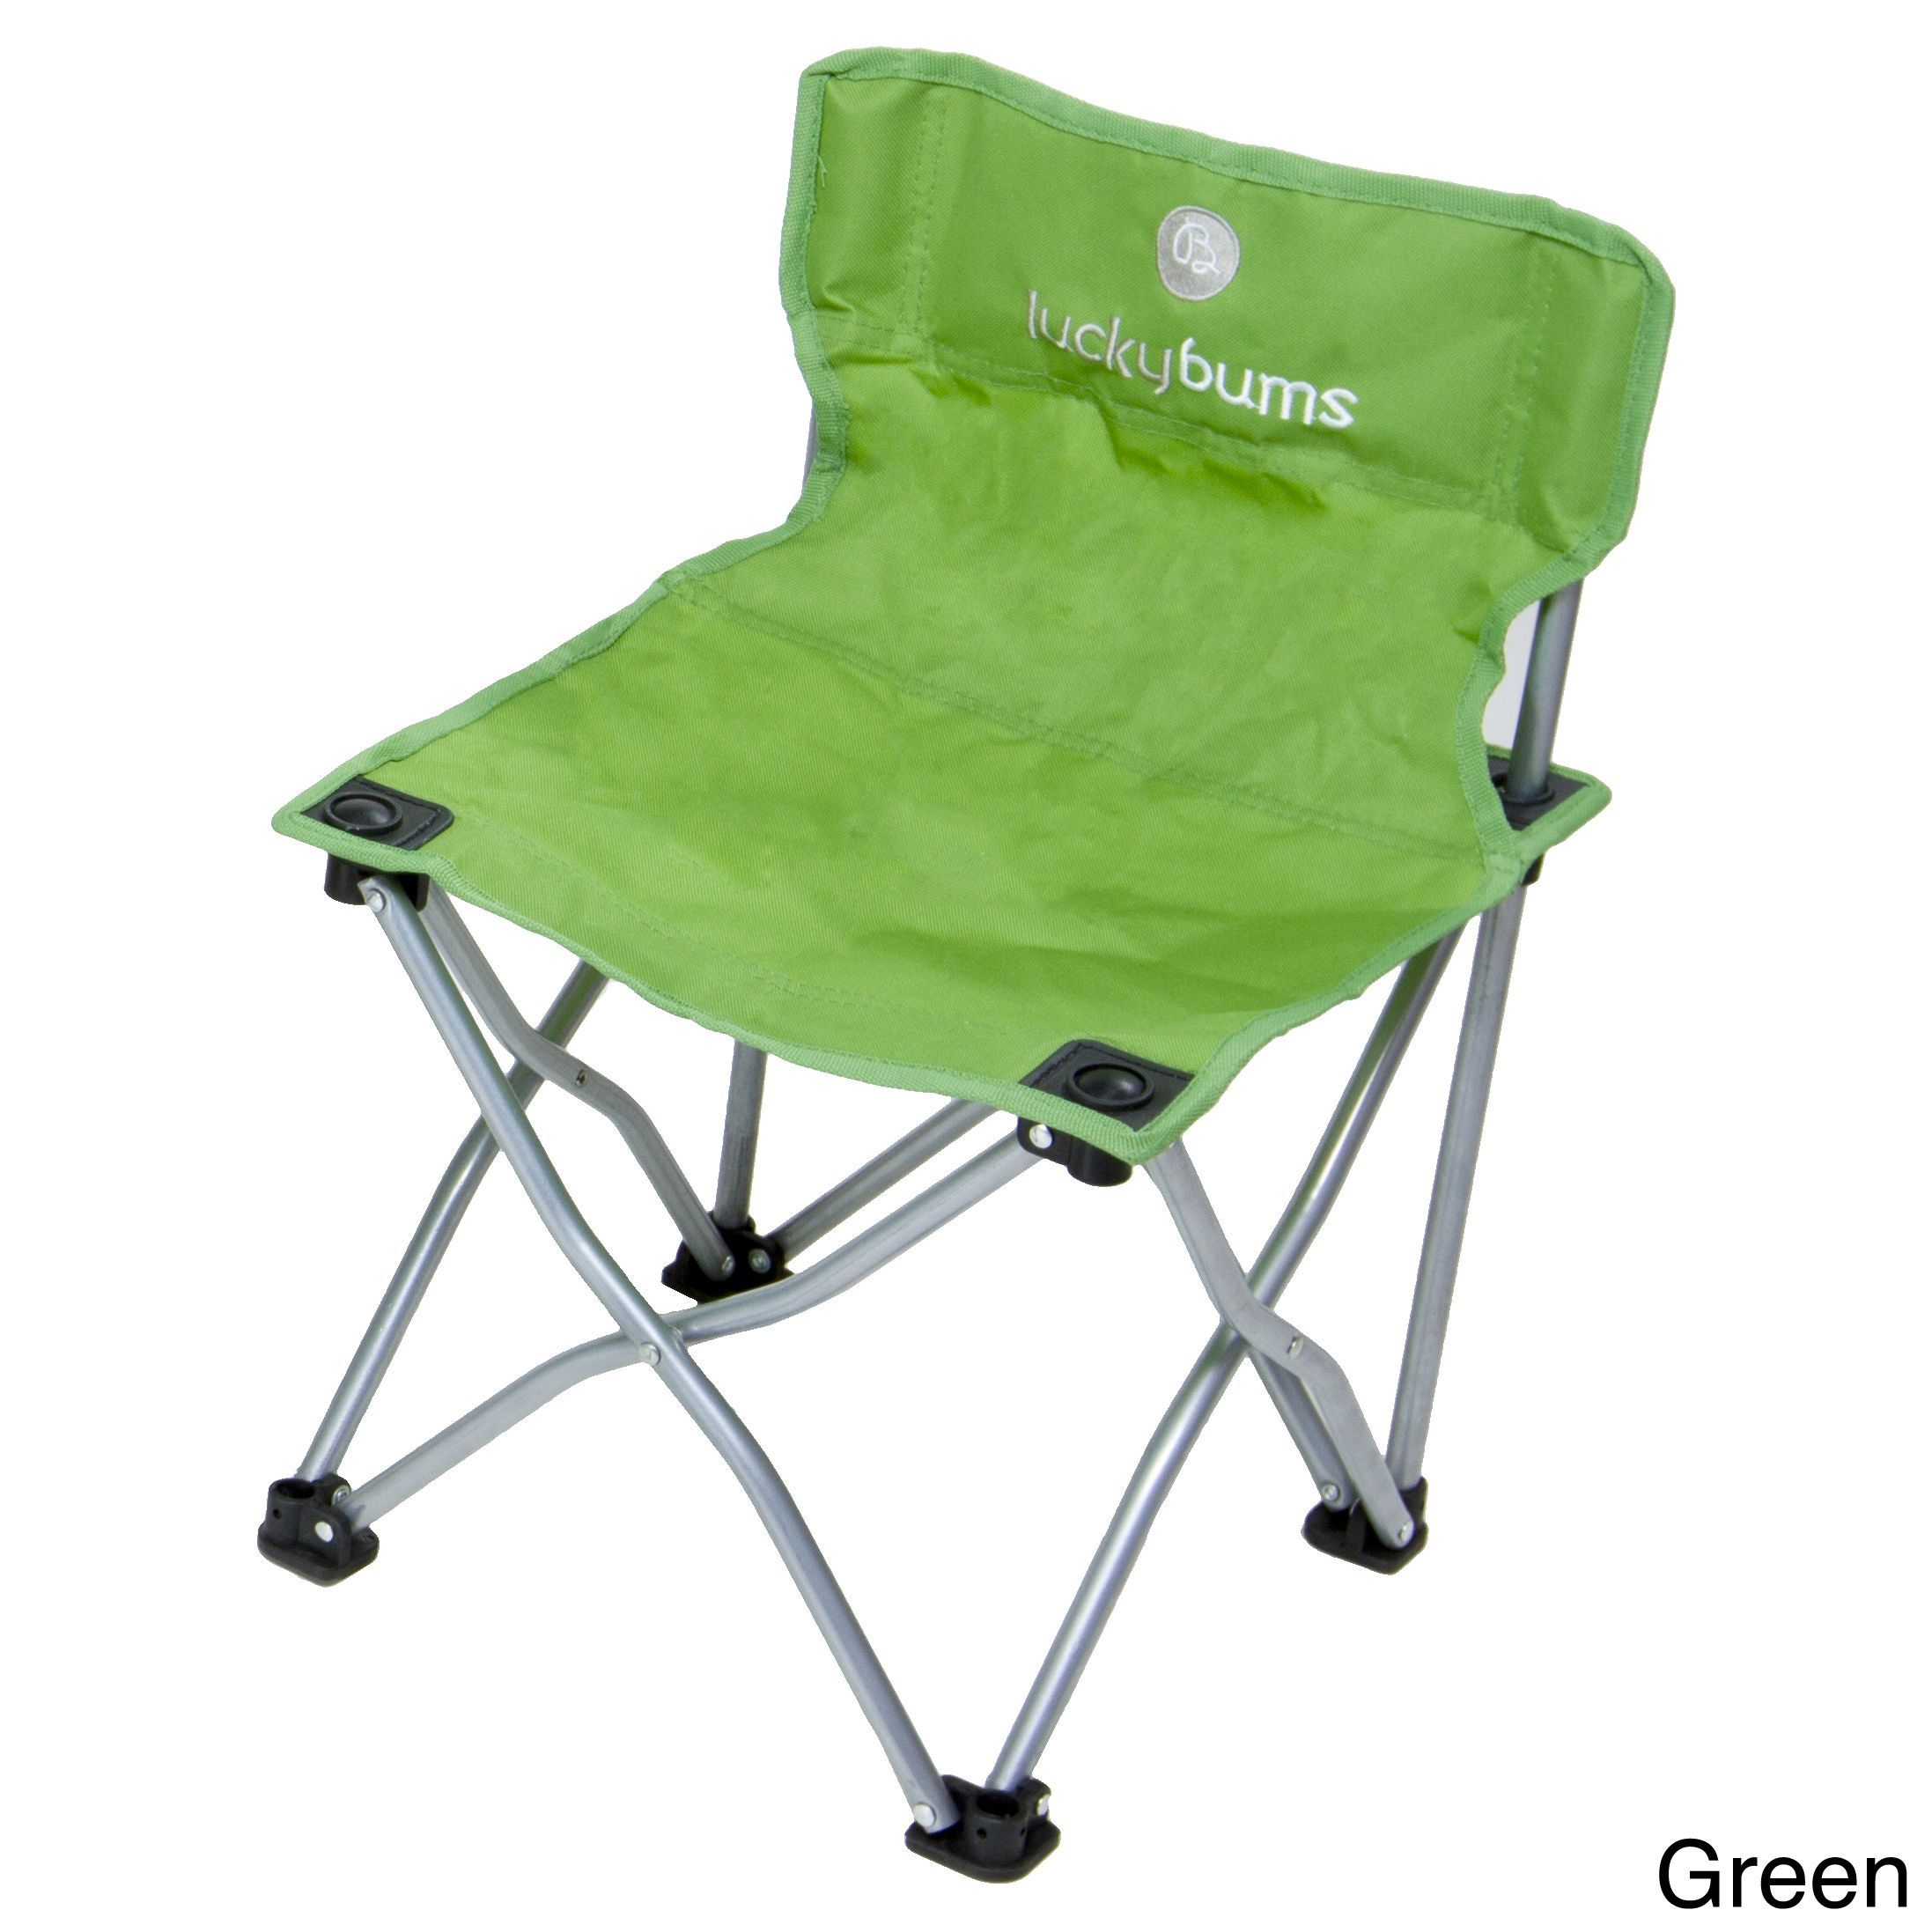 Lucky Bums Camp Chair Red Side Youth Products Camping Chairs